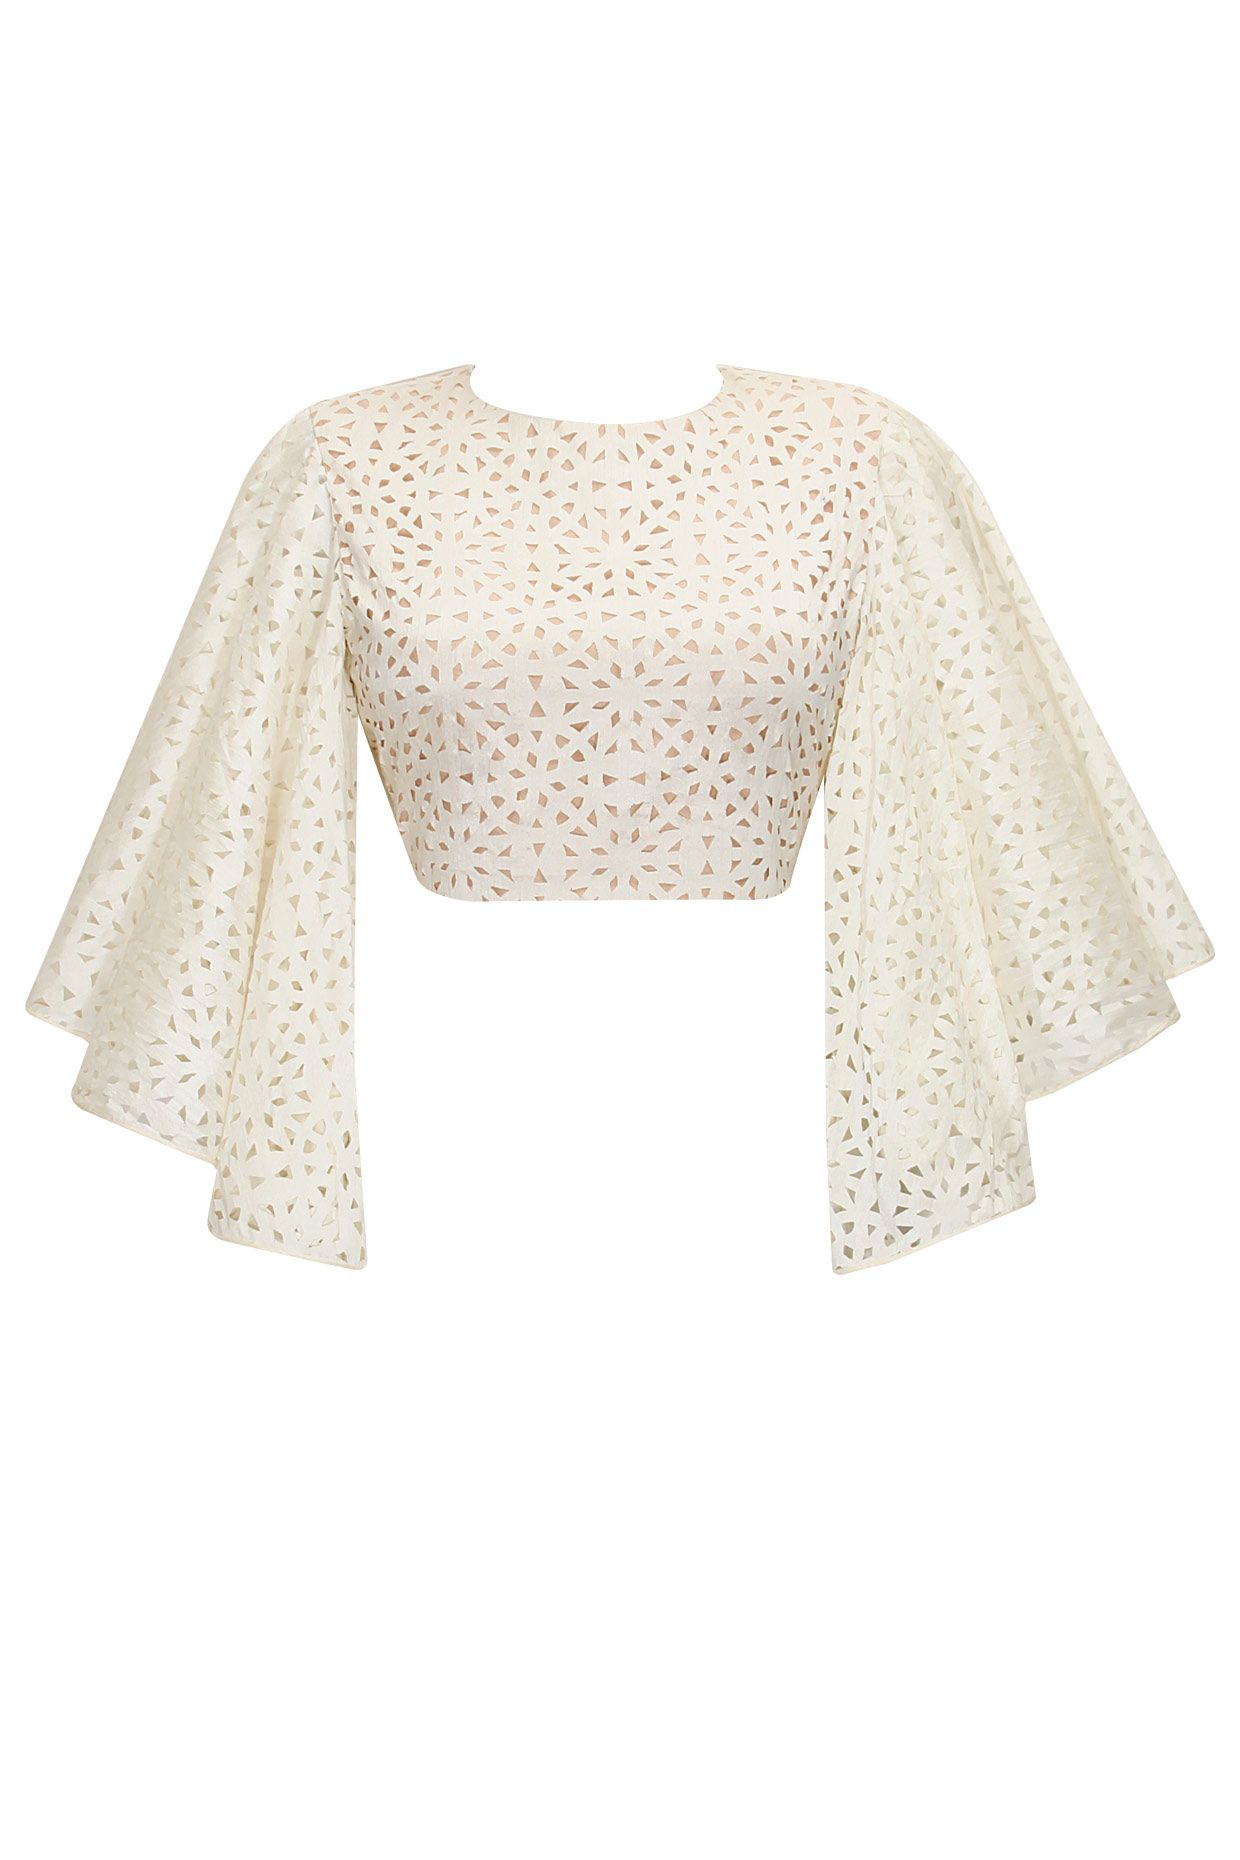 ba8e7a4a61c3ea Off white cutwork bell sleeves crop top available only at Pernia's Pop-Up  Shop.